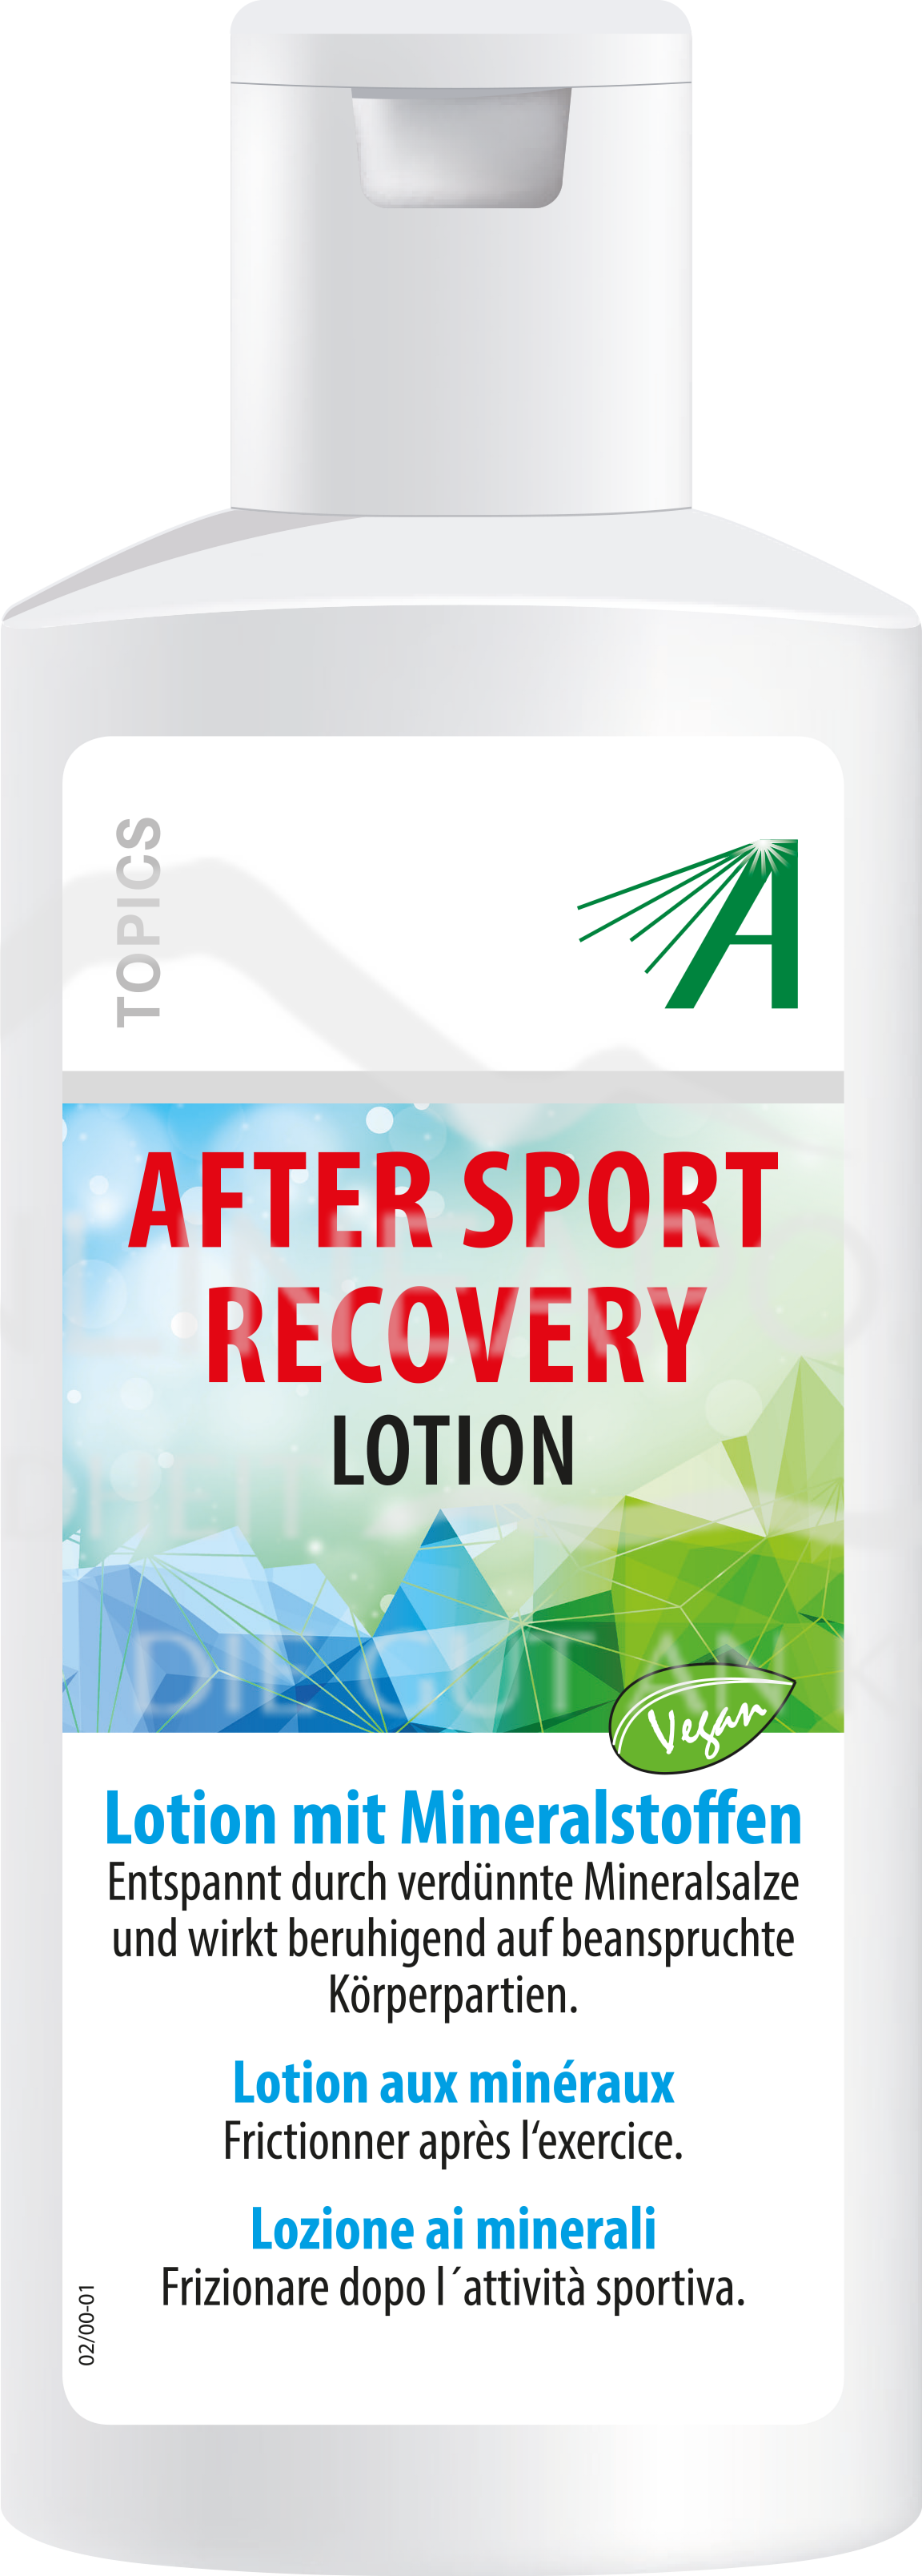 Adler After Sport Recovery Lotion